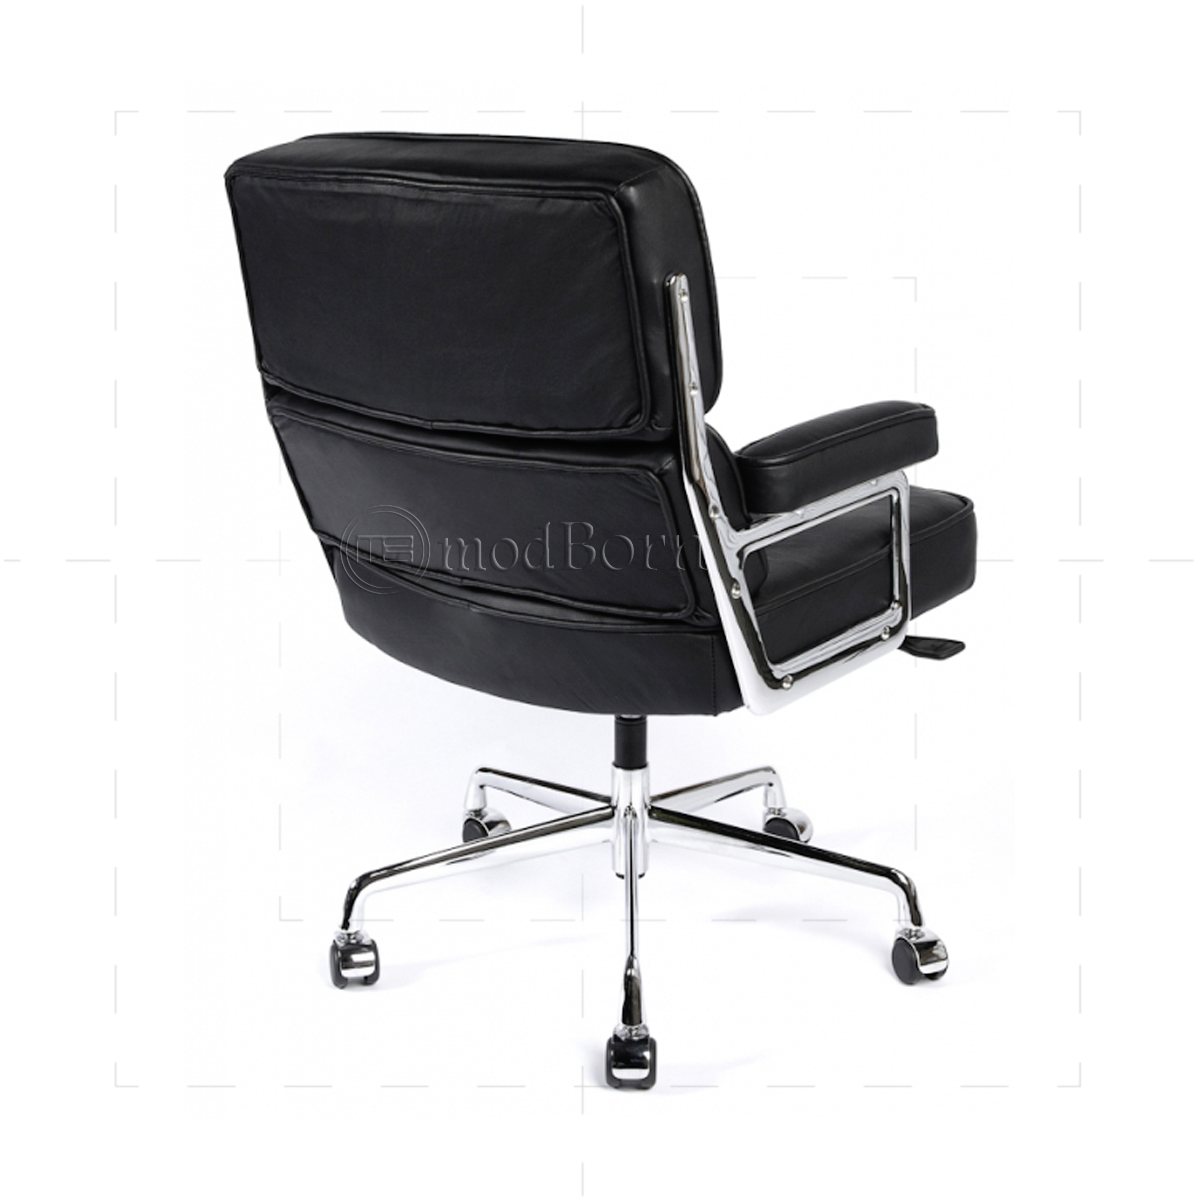 ea104 eames style office lobby black leather executive chair replica. Black Bedroom Furniture Sets. Home Design Ideas